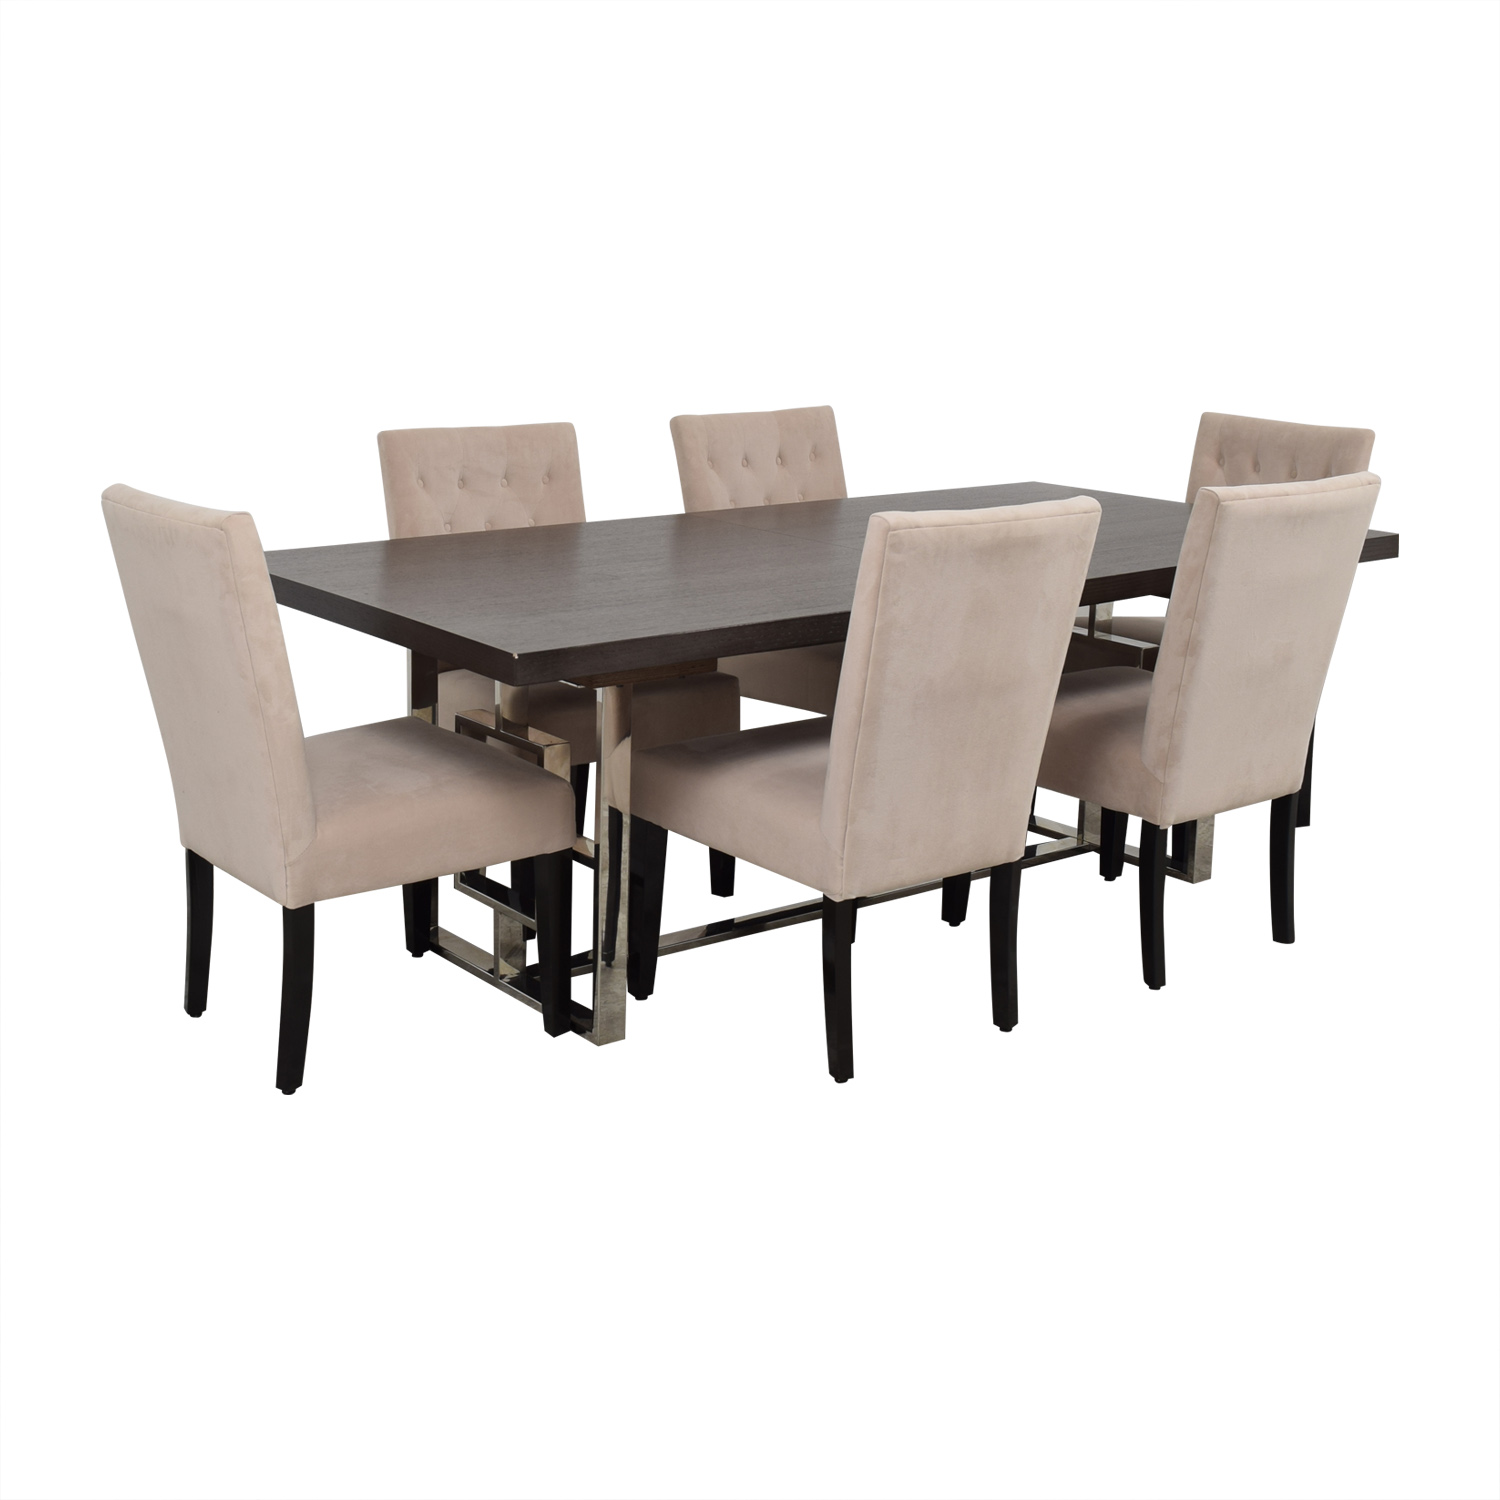 Z Gallerie Rylan Extentable Dining Set with Beige Tufted Chairs Z Gallerie